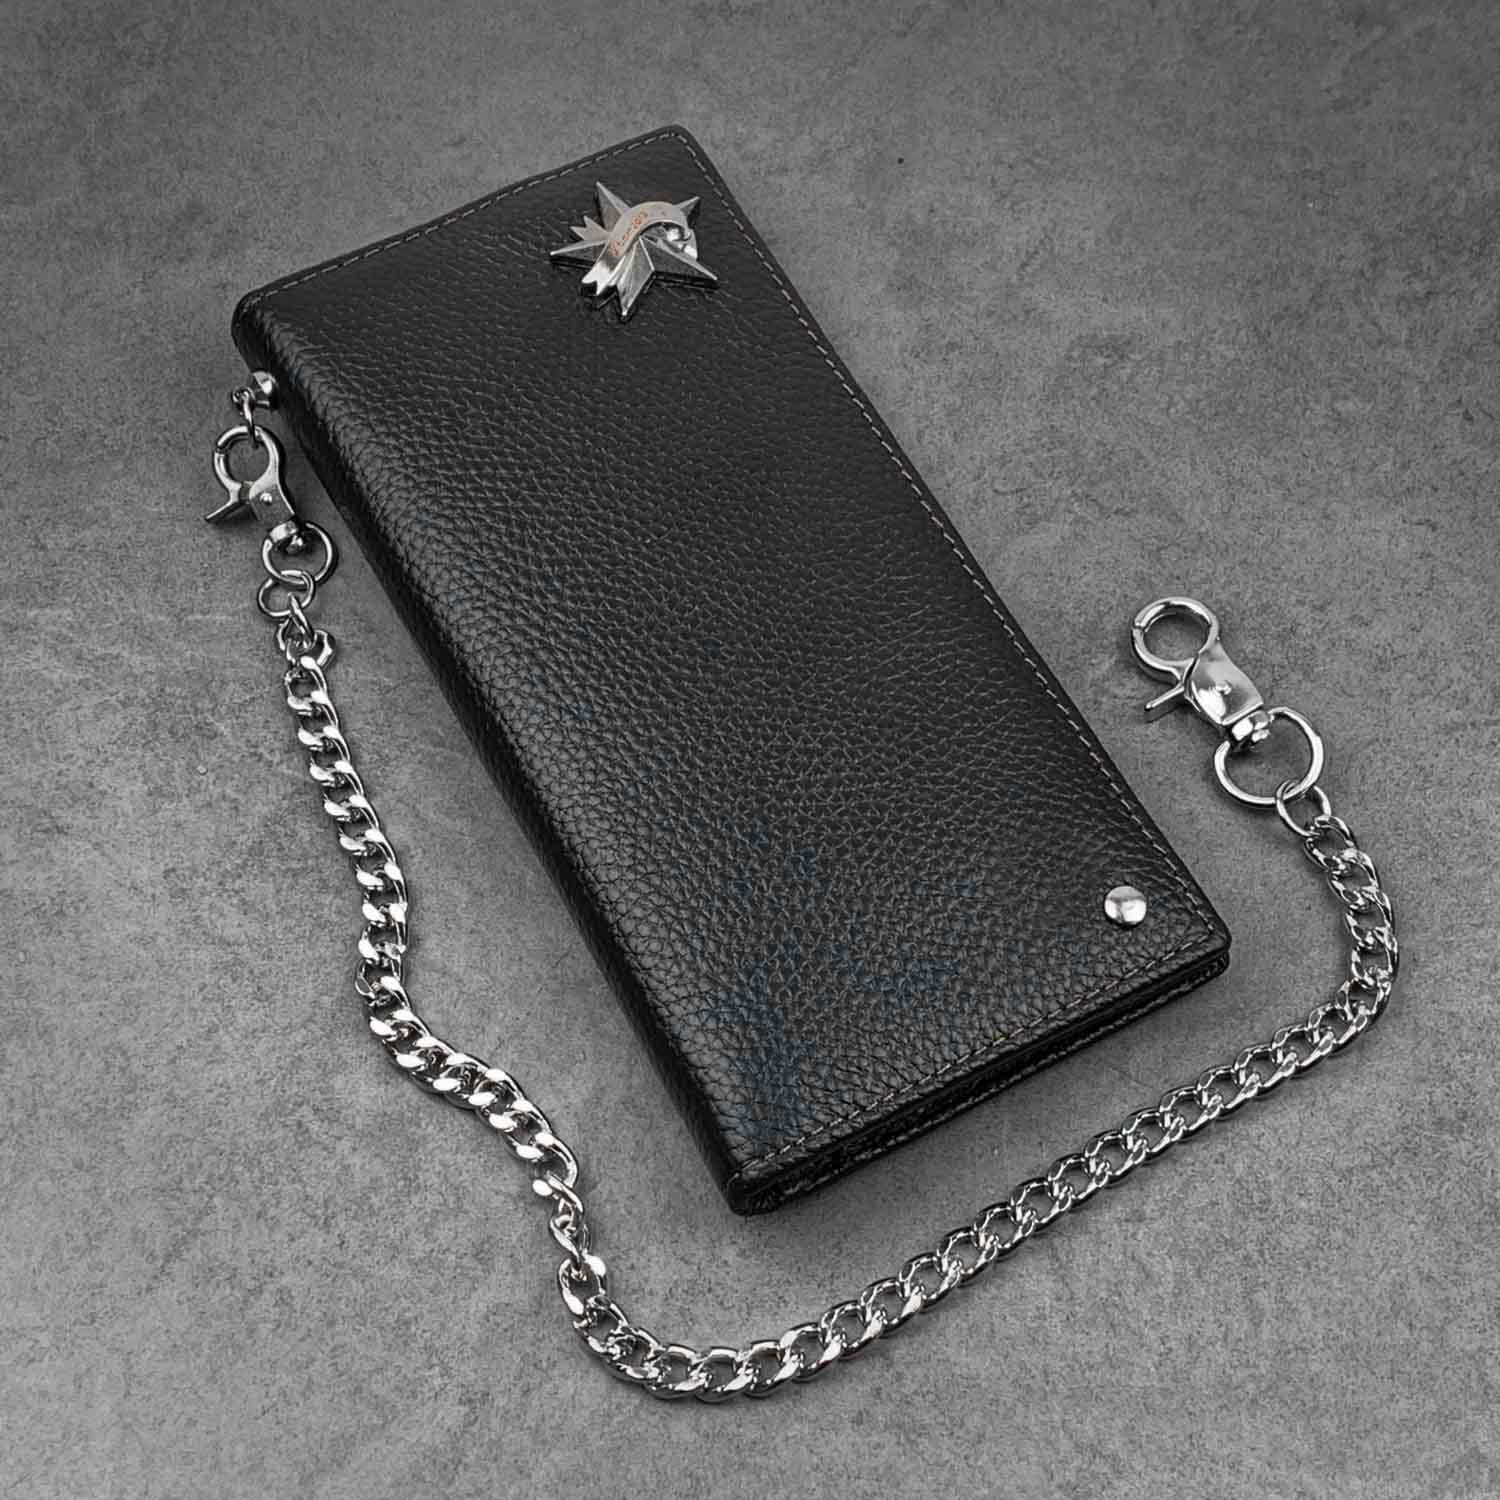 Black Casual Leather Mens Long Wallet Bifold Biker CHain Wallet Biker Wallet Chain Wallet For Men